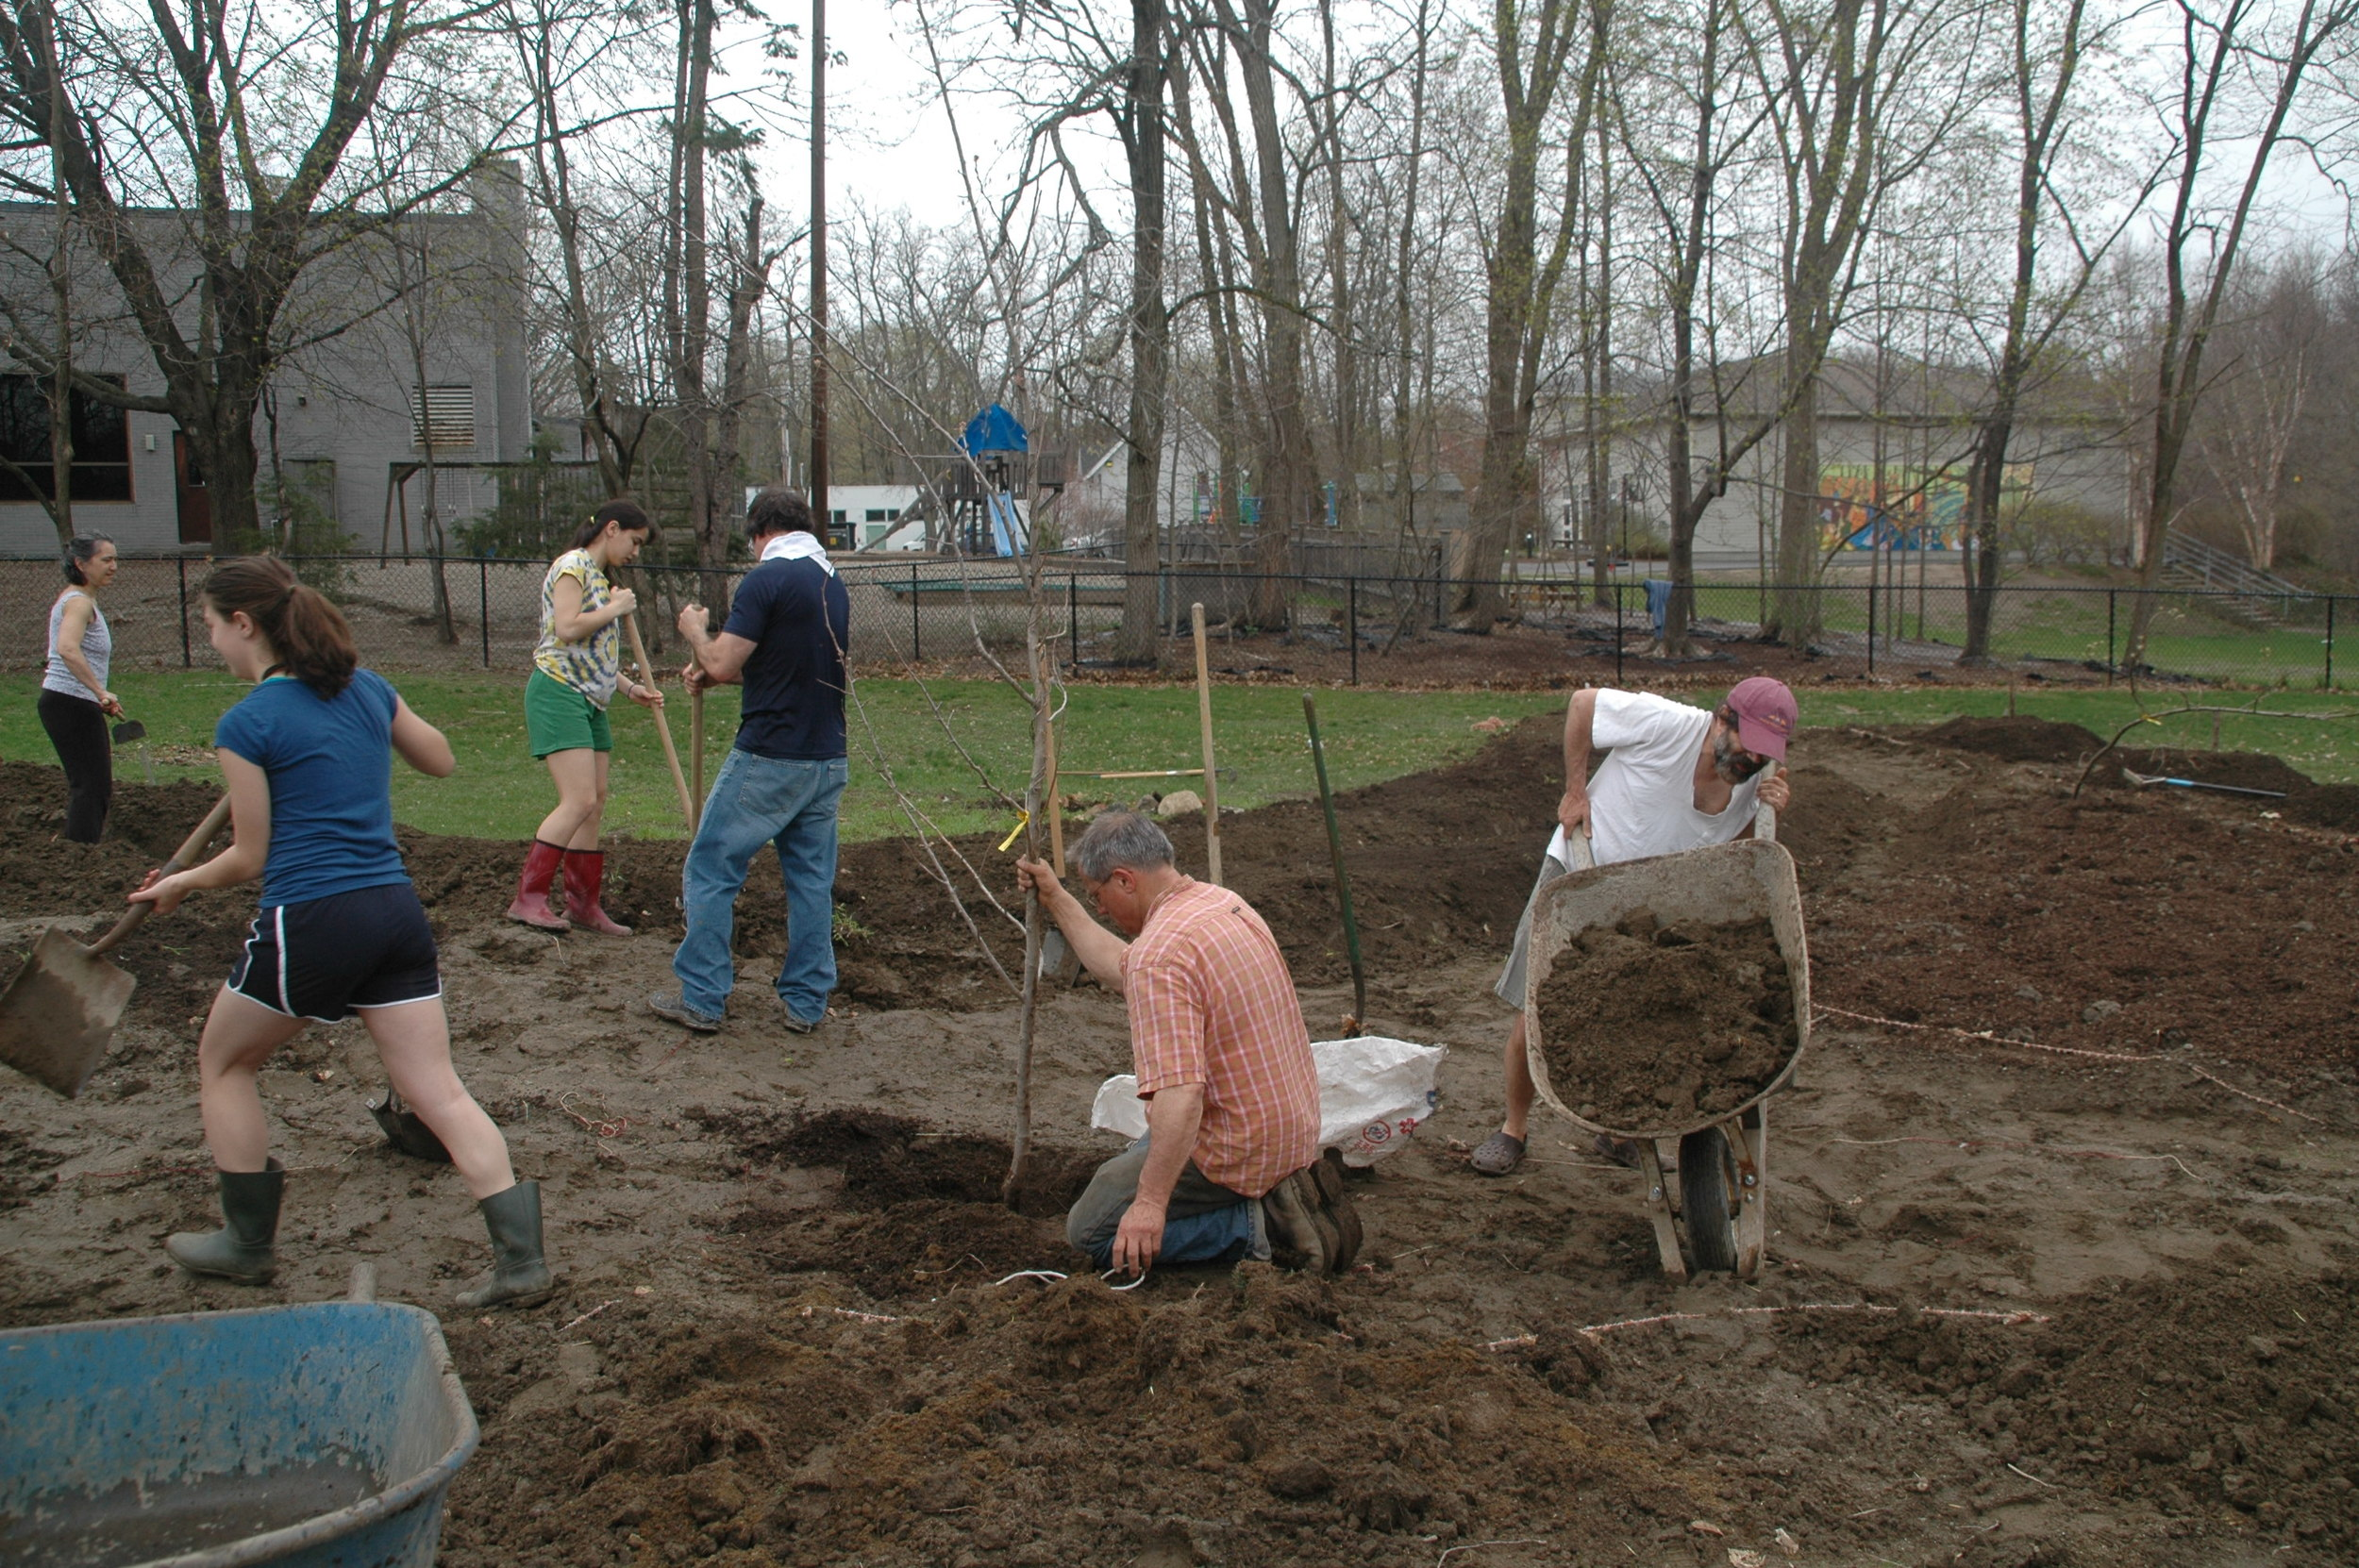 The initial CBI Garden being established in 2011 by community parents and teens